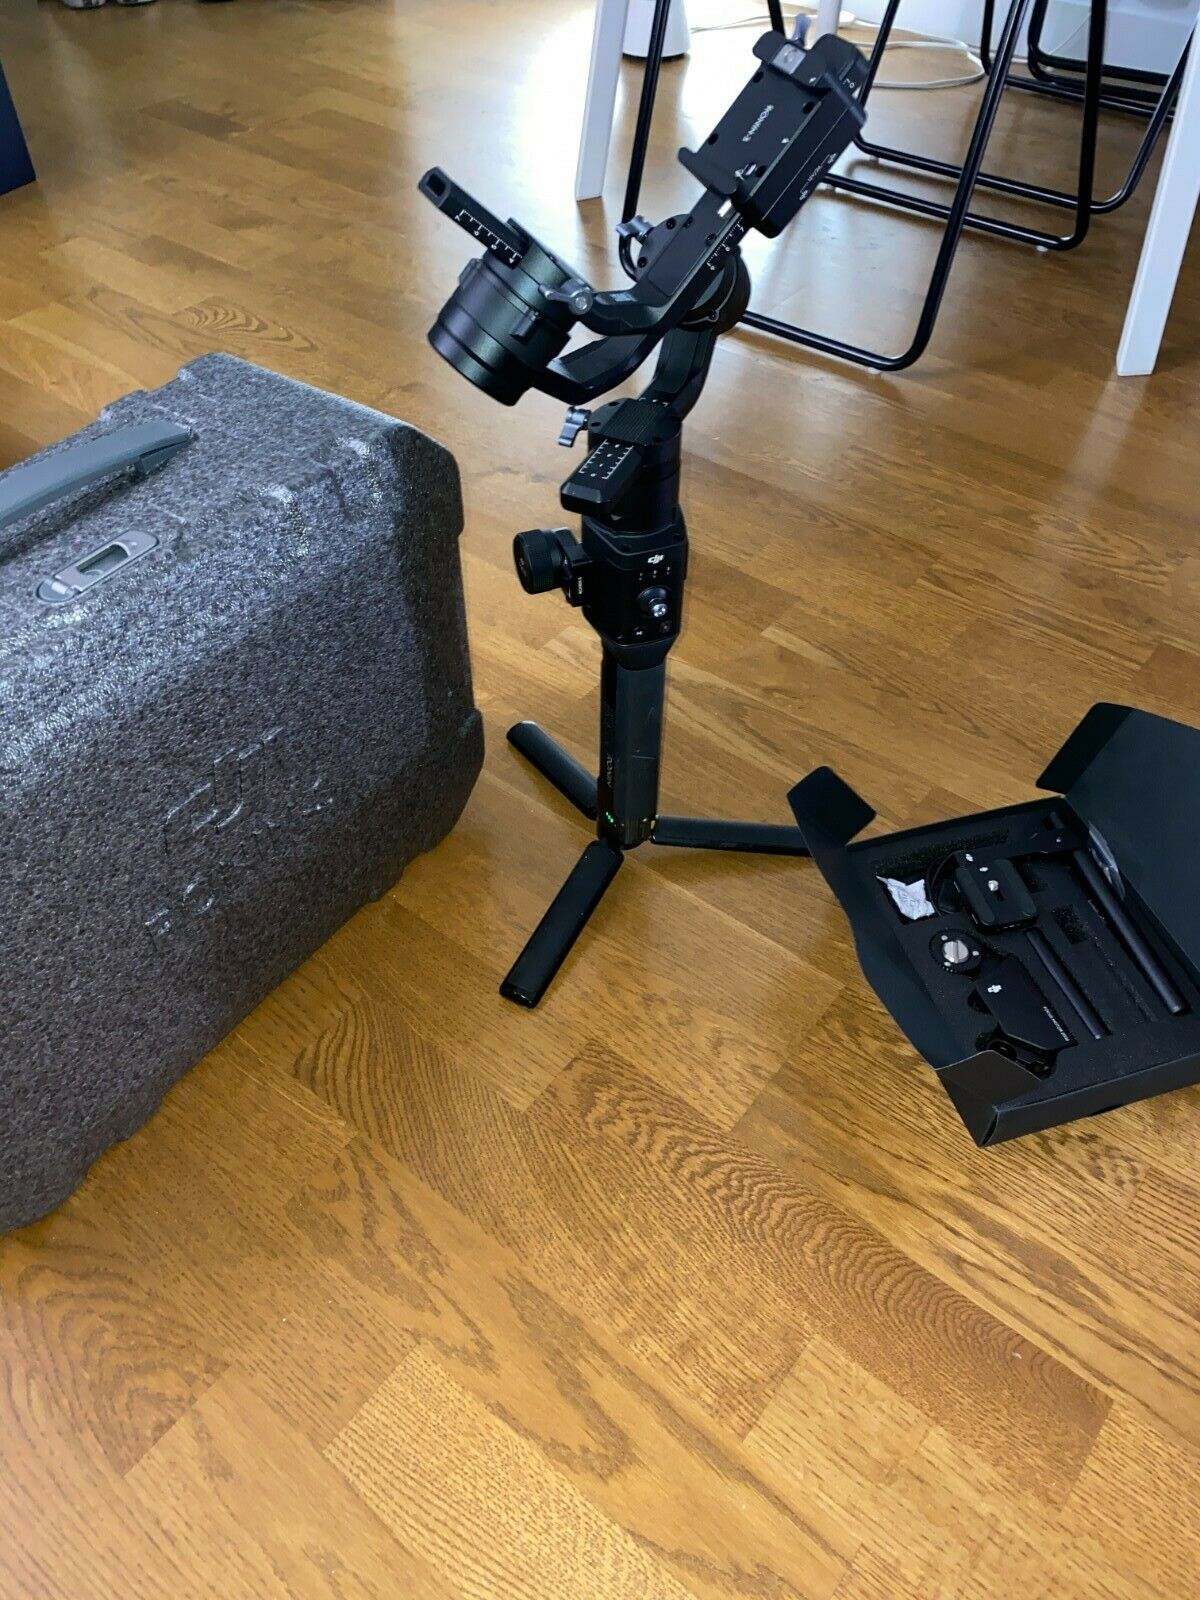 DJI Ronin S Gimbal Stabalizer Kit Focus Motor - Excellent Condition - $350.00